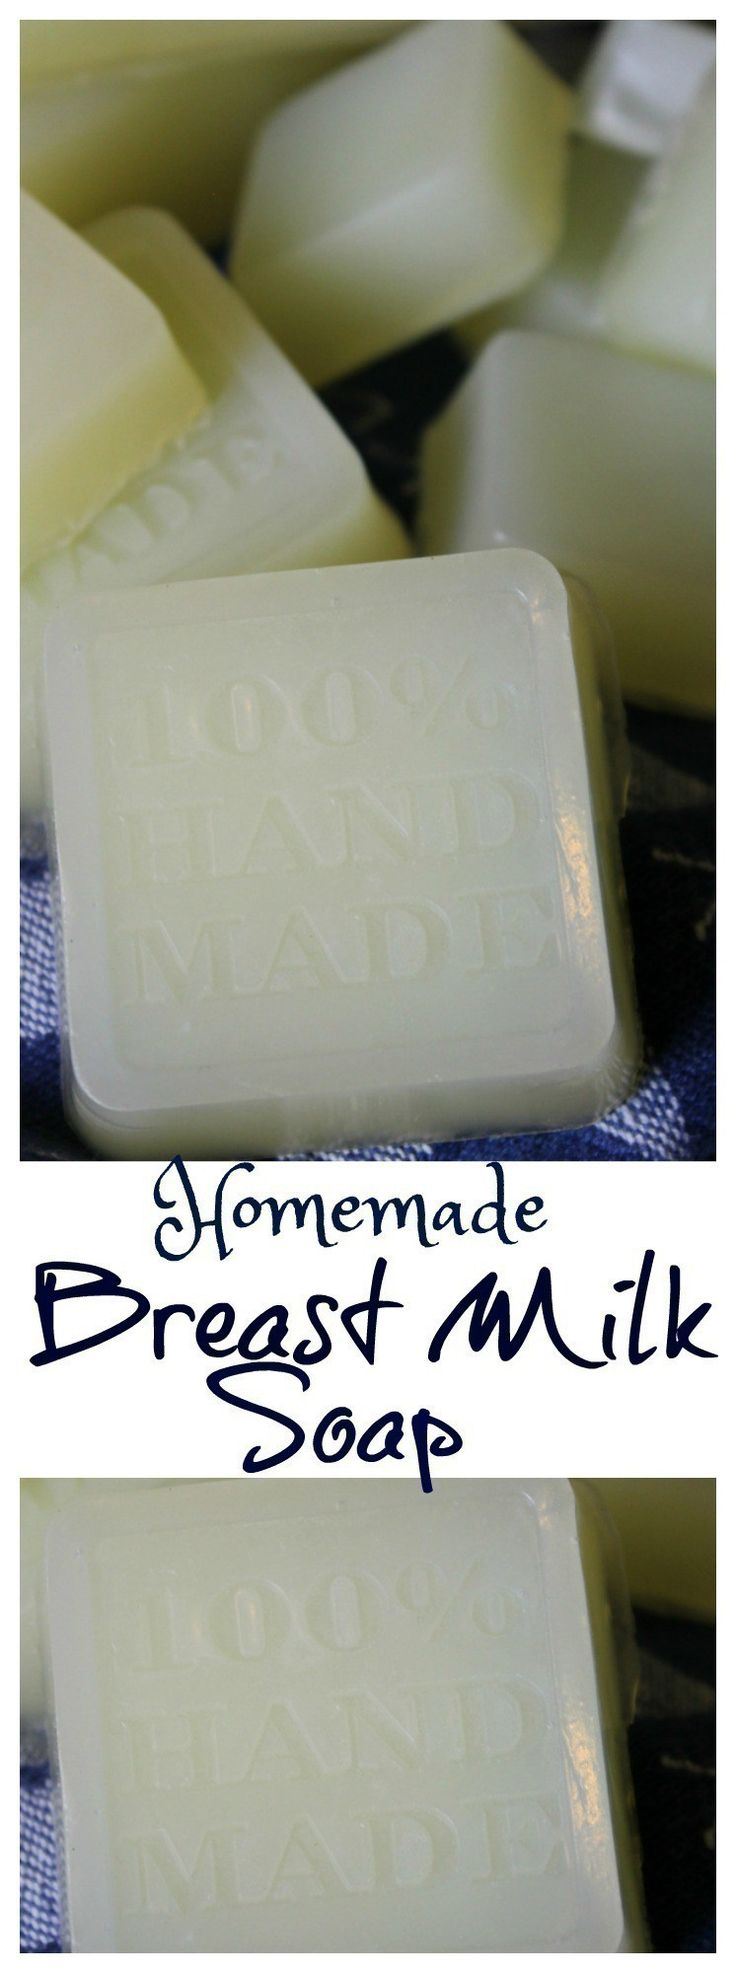 This homemade breast milk soap recipe is a wonderful way to use up excess breast milk without the worry of handling dangerous lye.